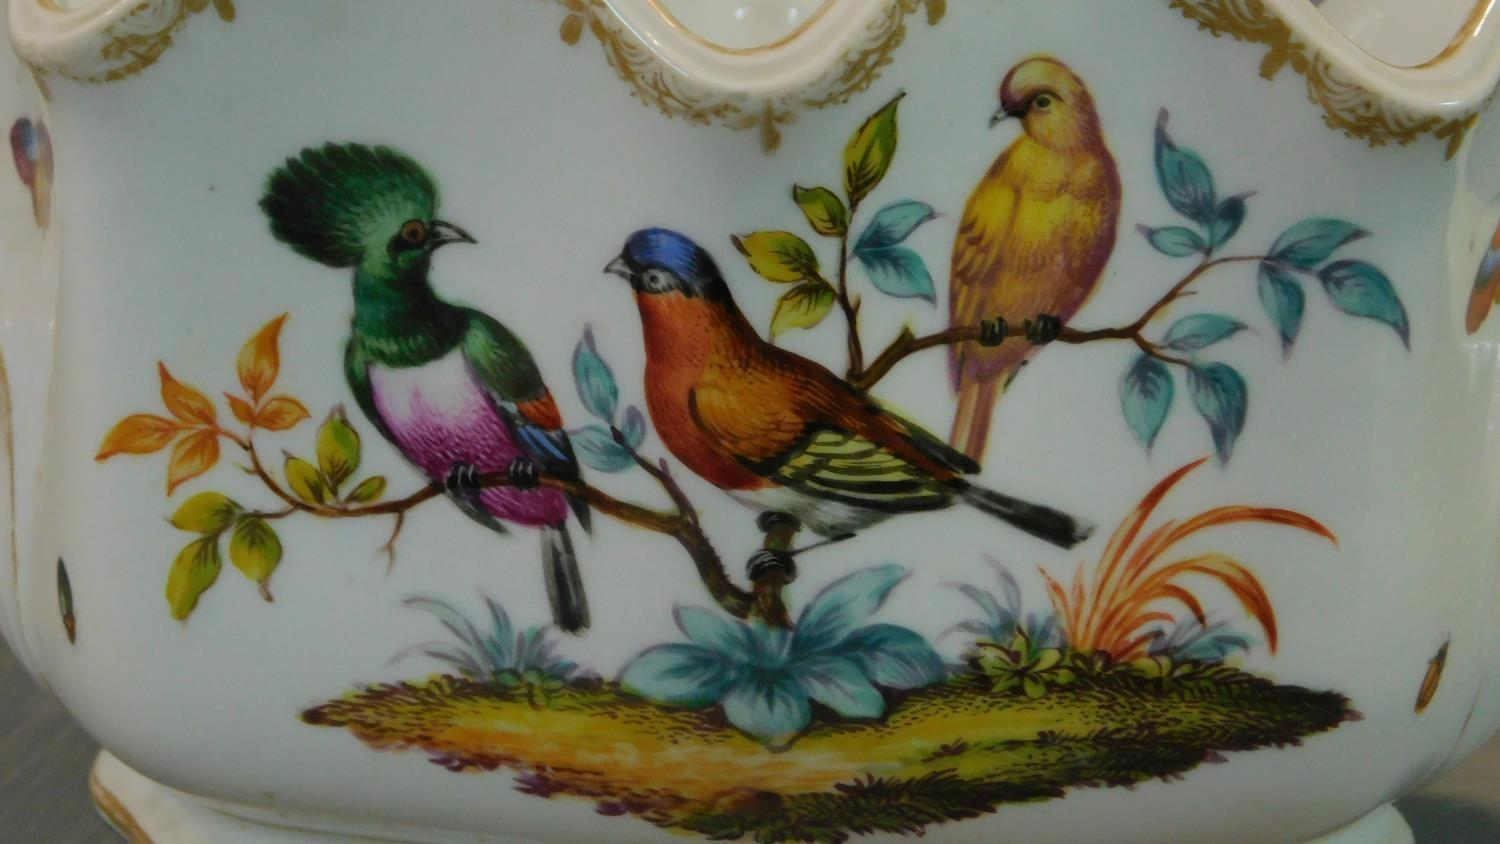 A Meissen style porcelain vase, hand painted with bird decoration. 14x18cm - Image 4 of 9